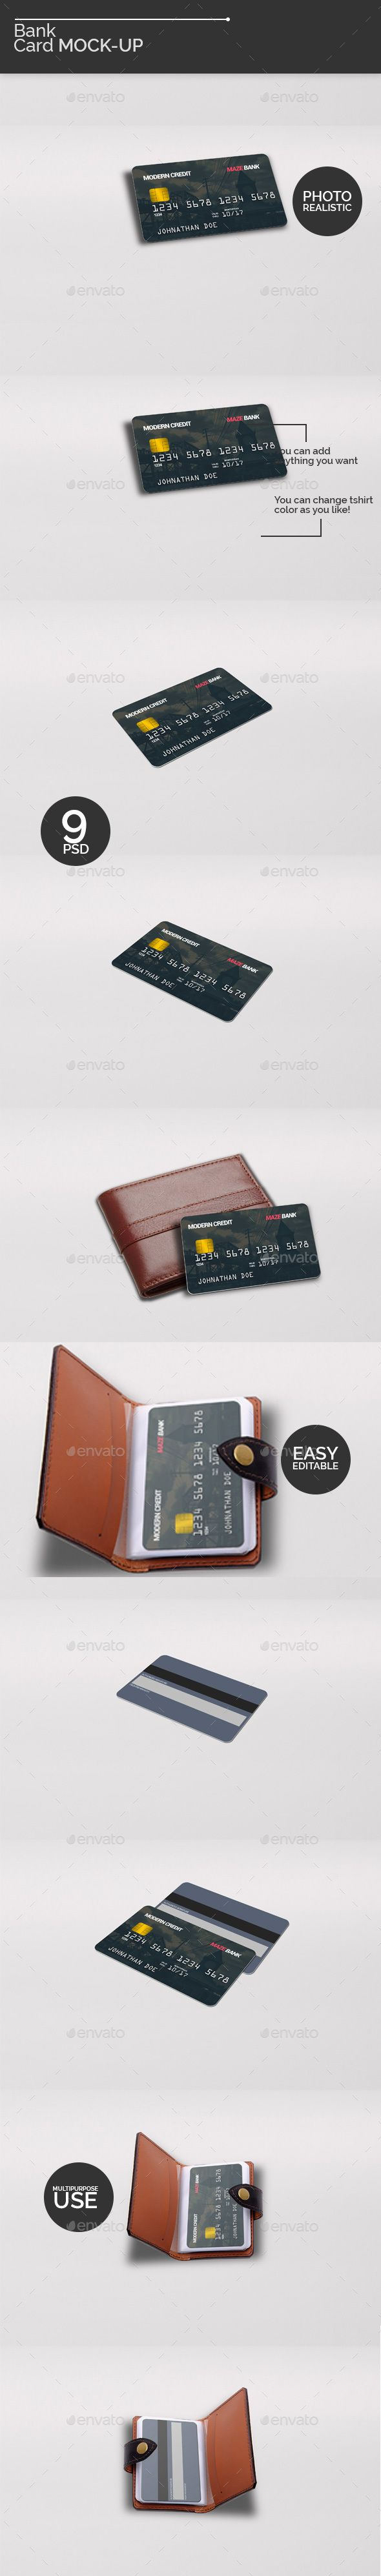 Bank Card MockUps — Photoshop PSD #debit #realistic • Available here → https://graphicriver.net/item/bank-card-mockups/18194188?ref=pxcr